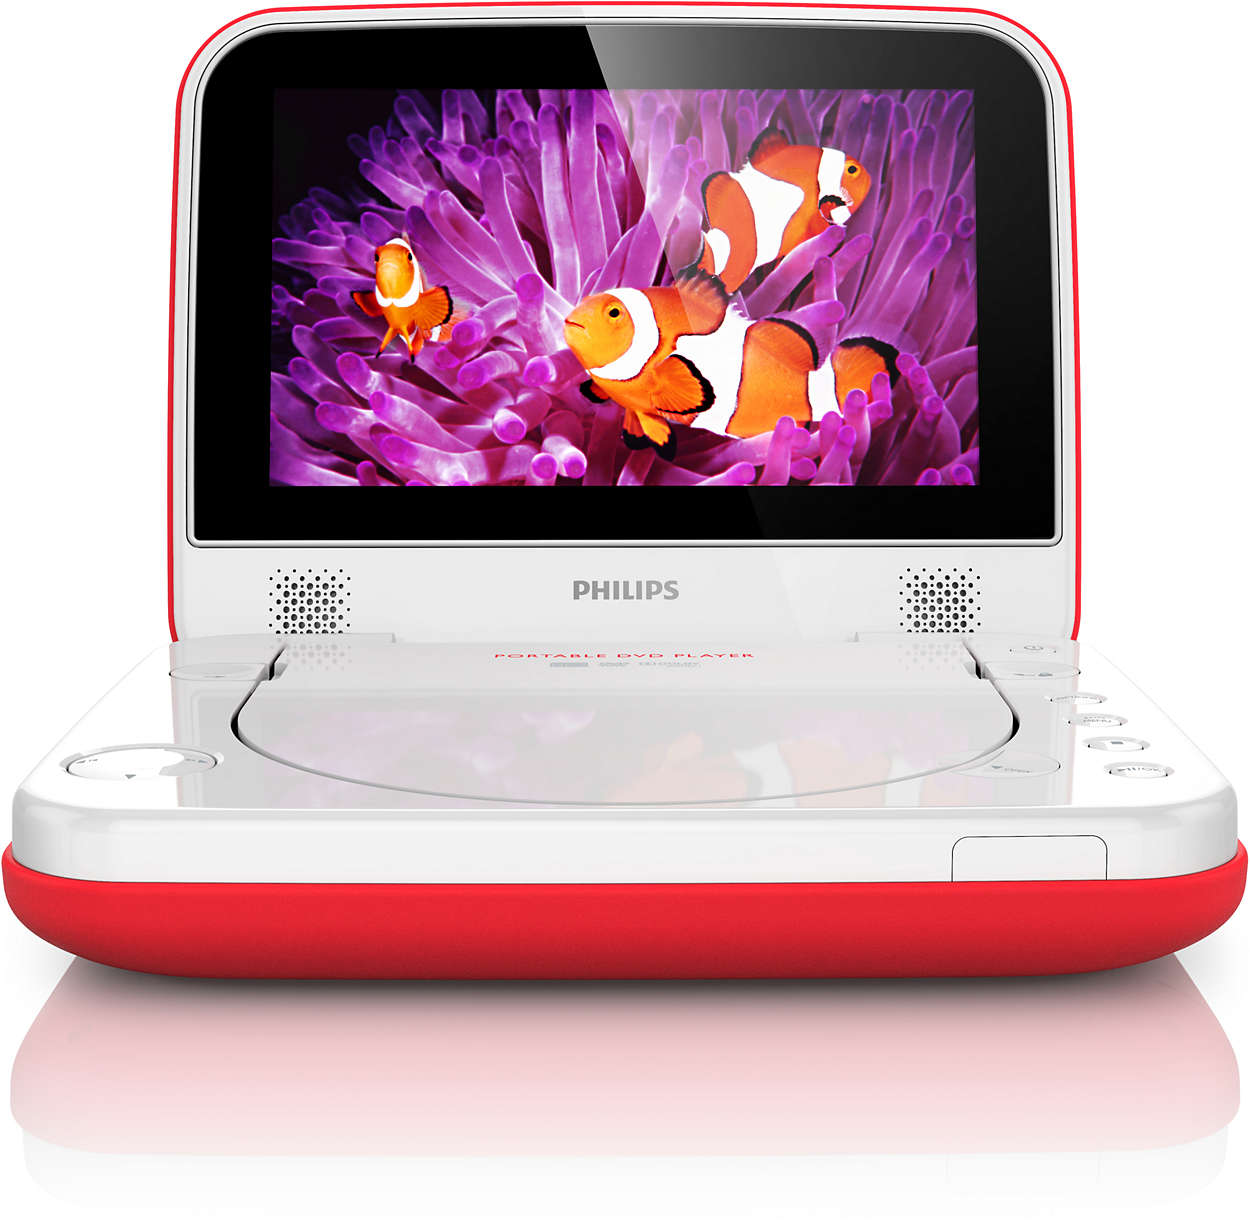 portable dvd player pd704 37 philips. Black Bedroom Furniture Sets. Home Design Ideas